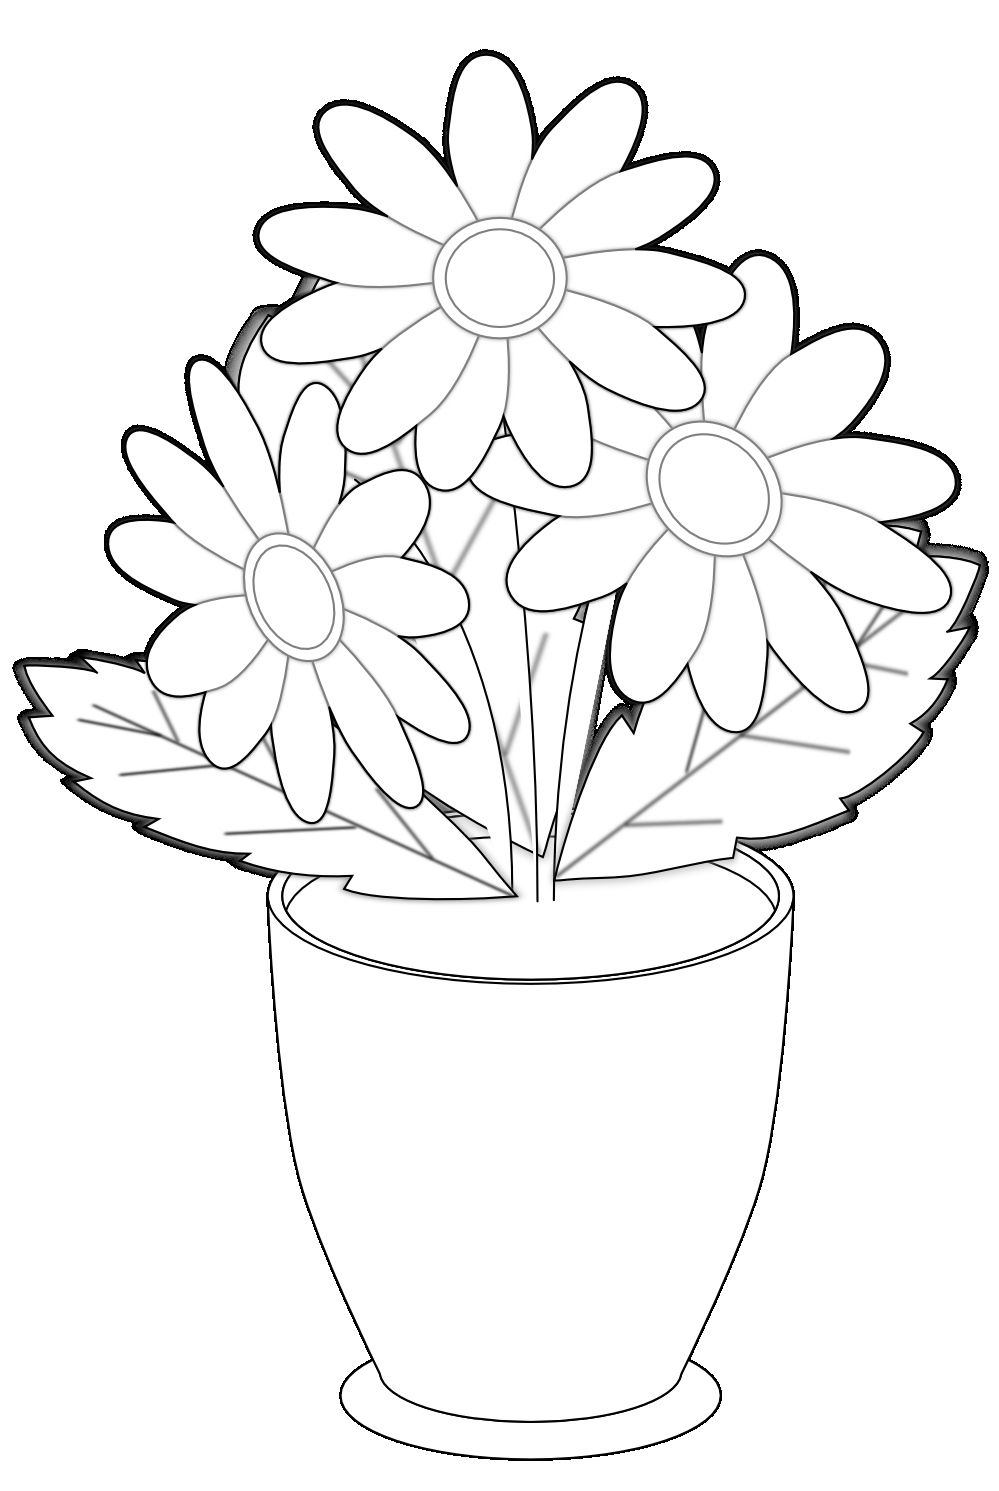 30 Lovely Vase Of Flowers Clipart Black And White Printable Flower Coloring Pages Flower Coloring Pages Coloring Pages